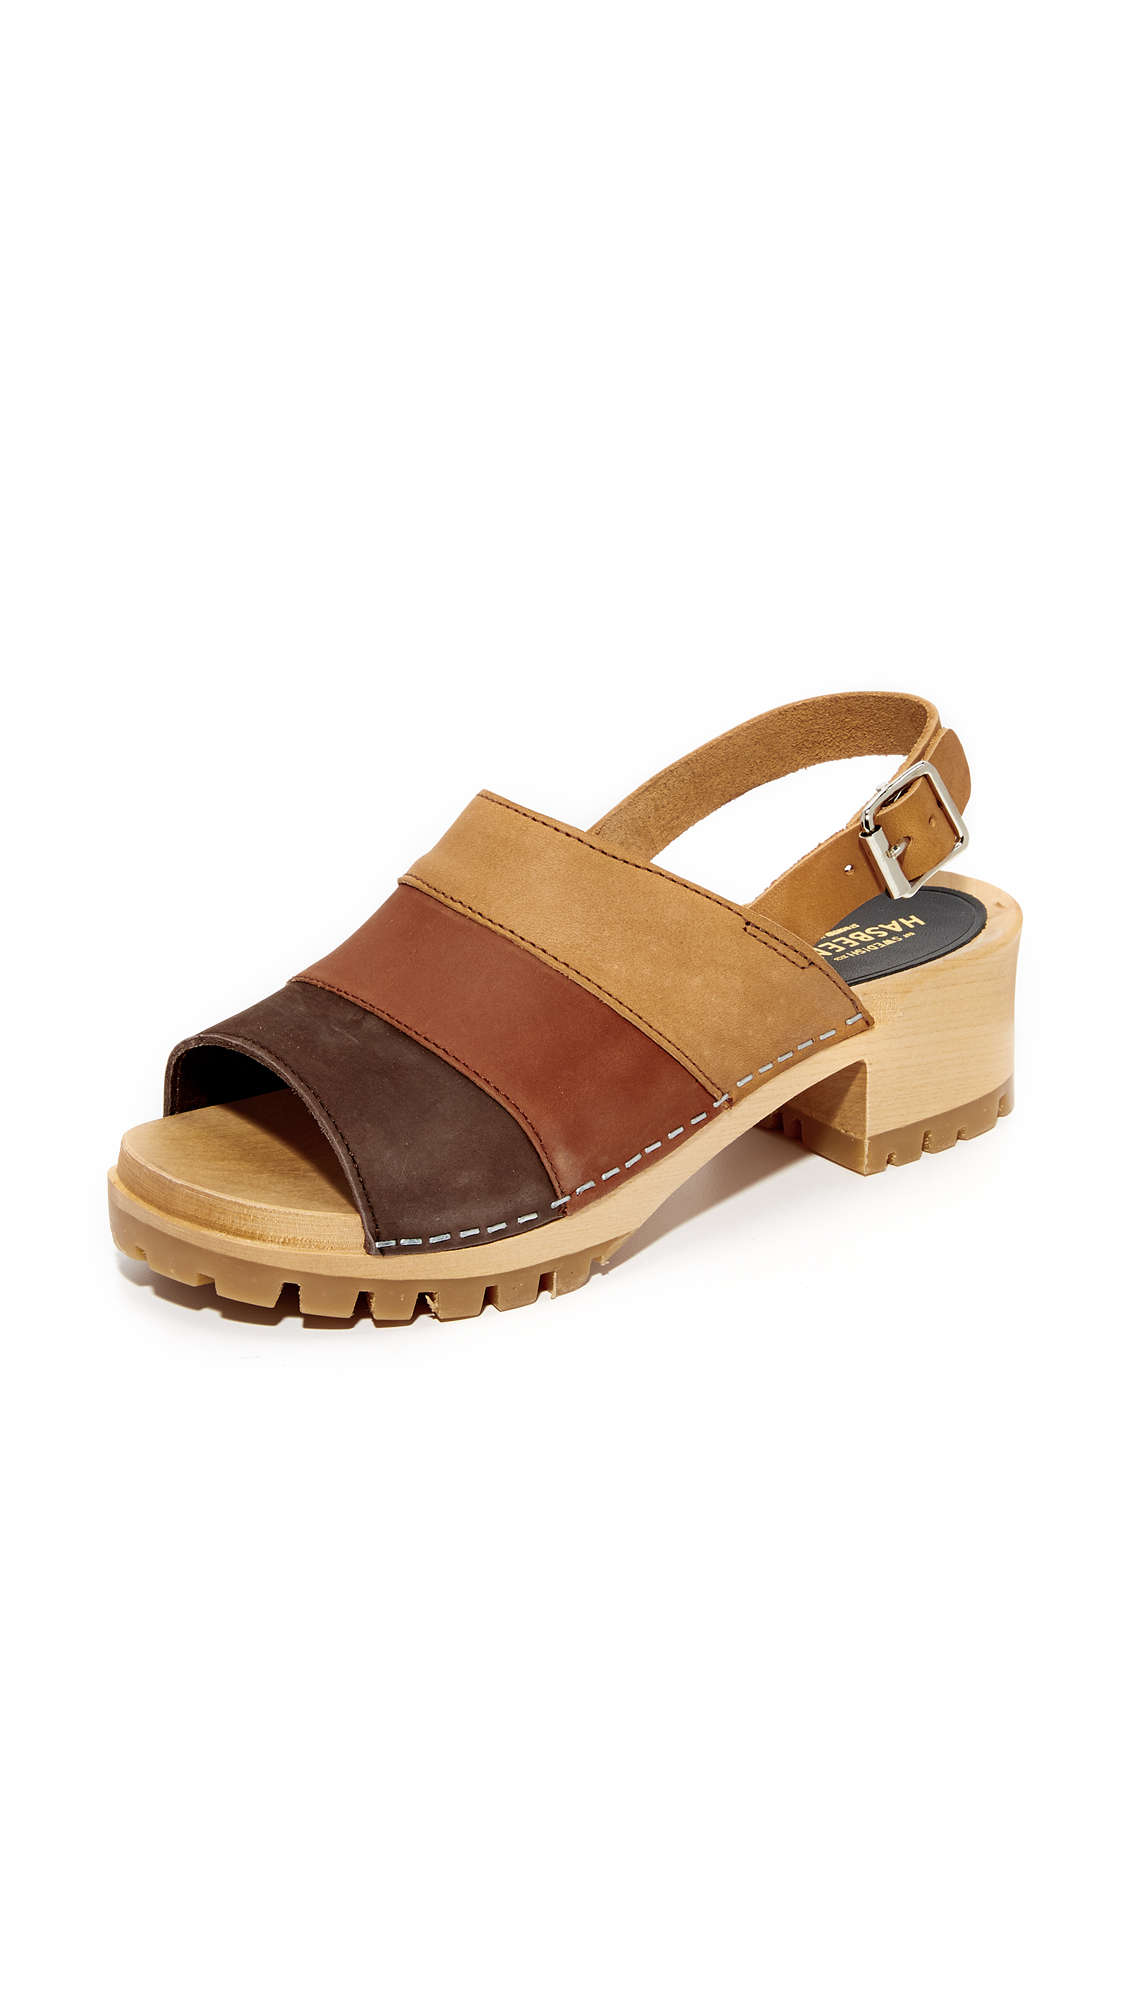 Swedish Hasbeens Hippie Sandals - Brown Combo